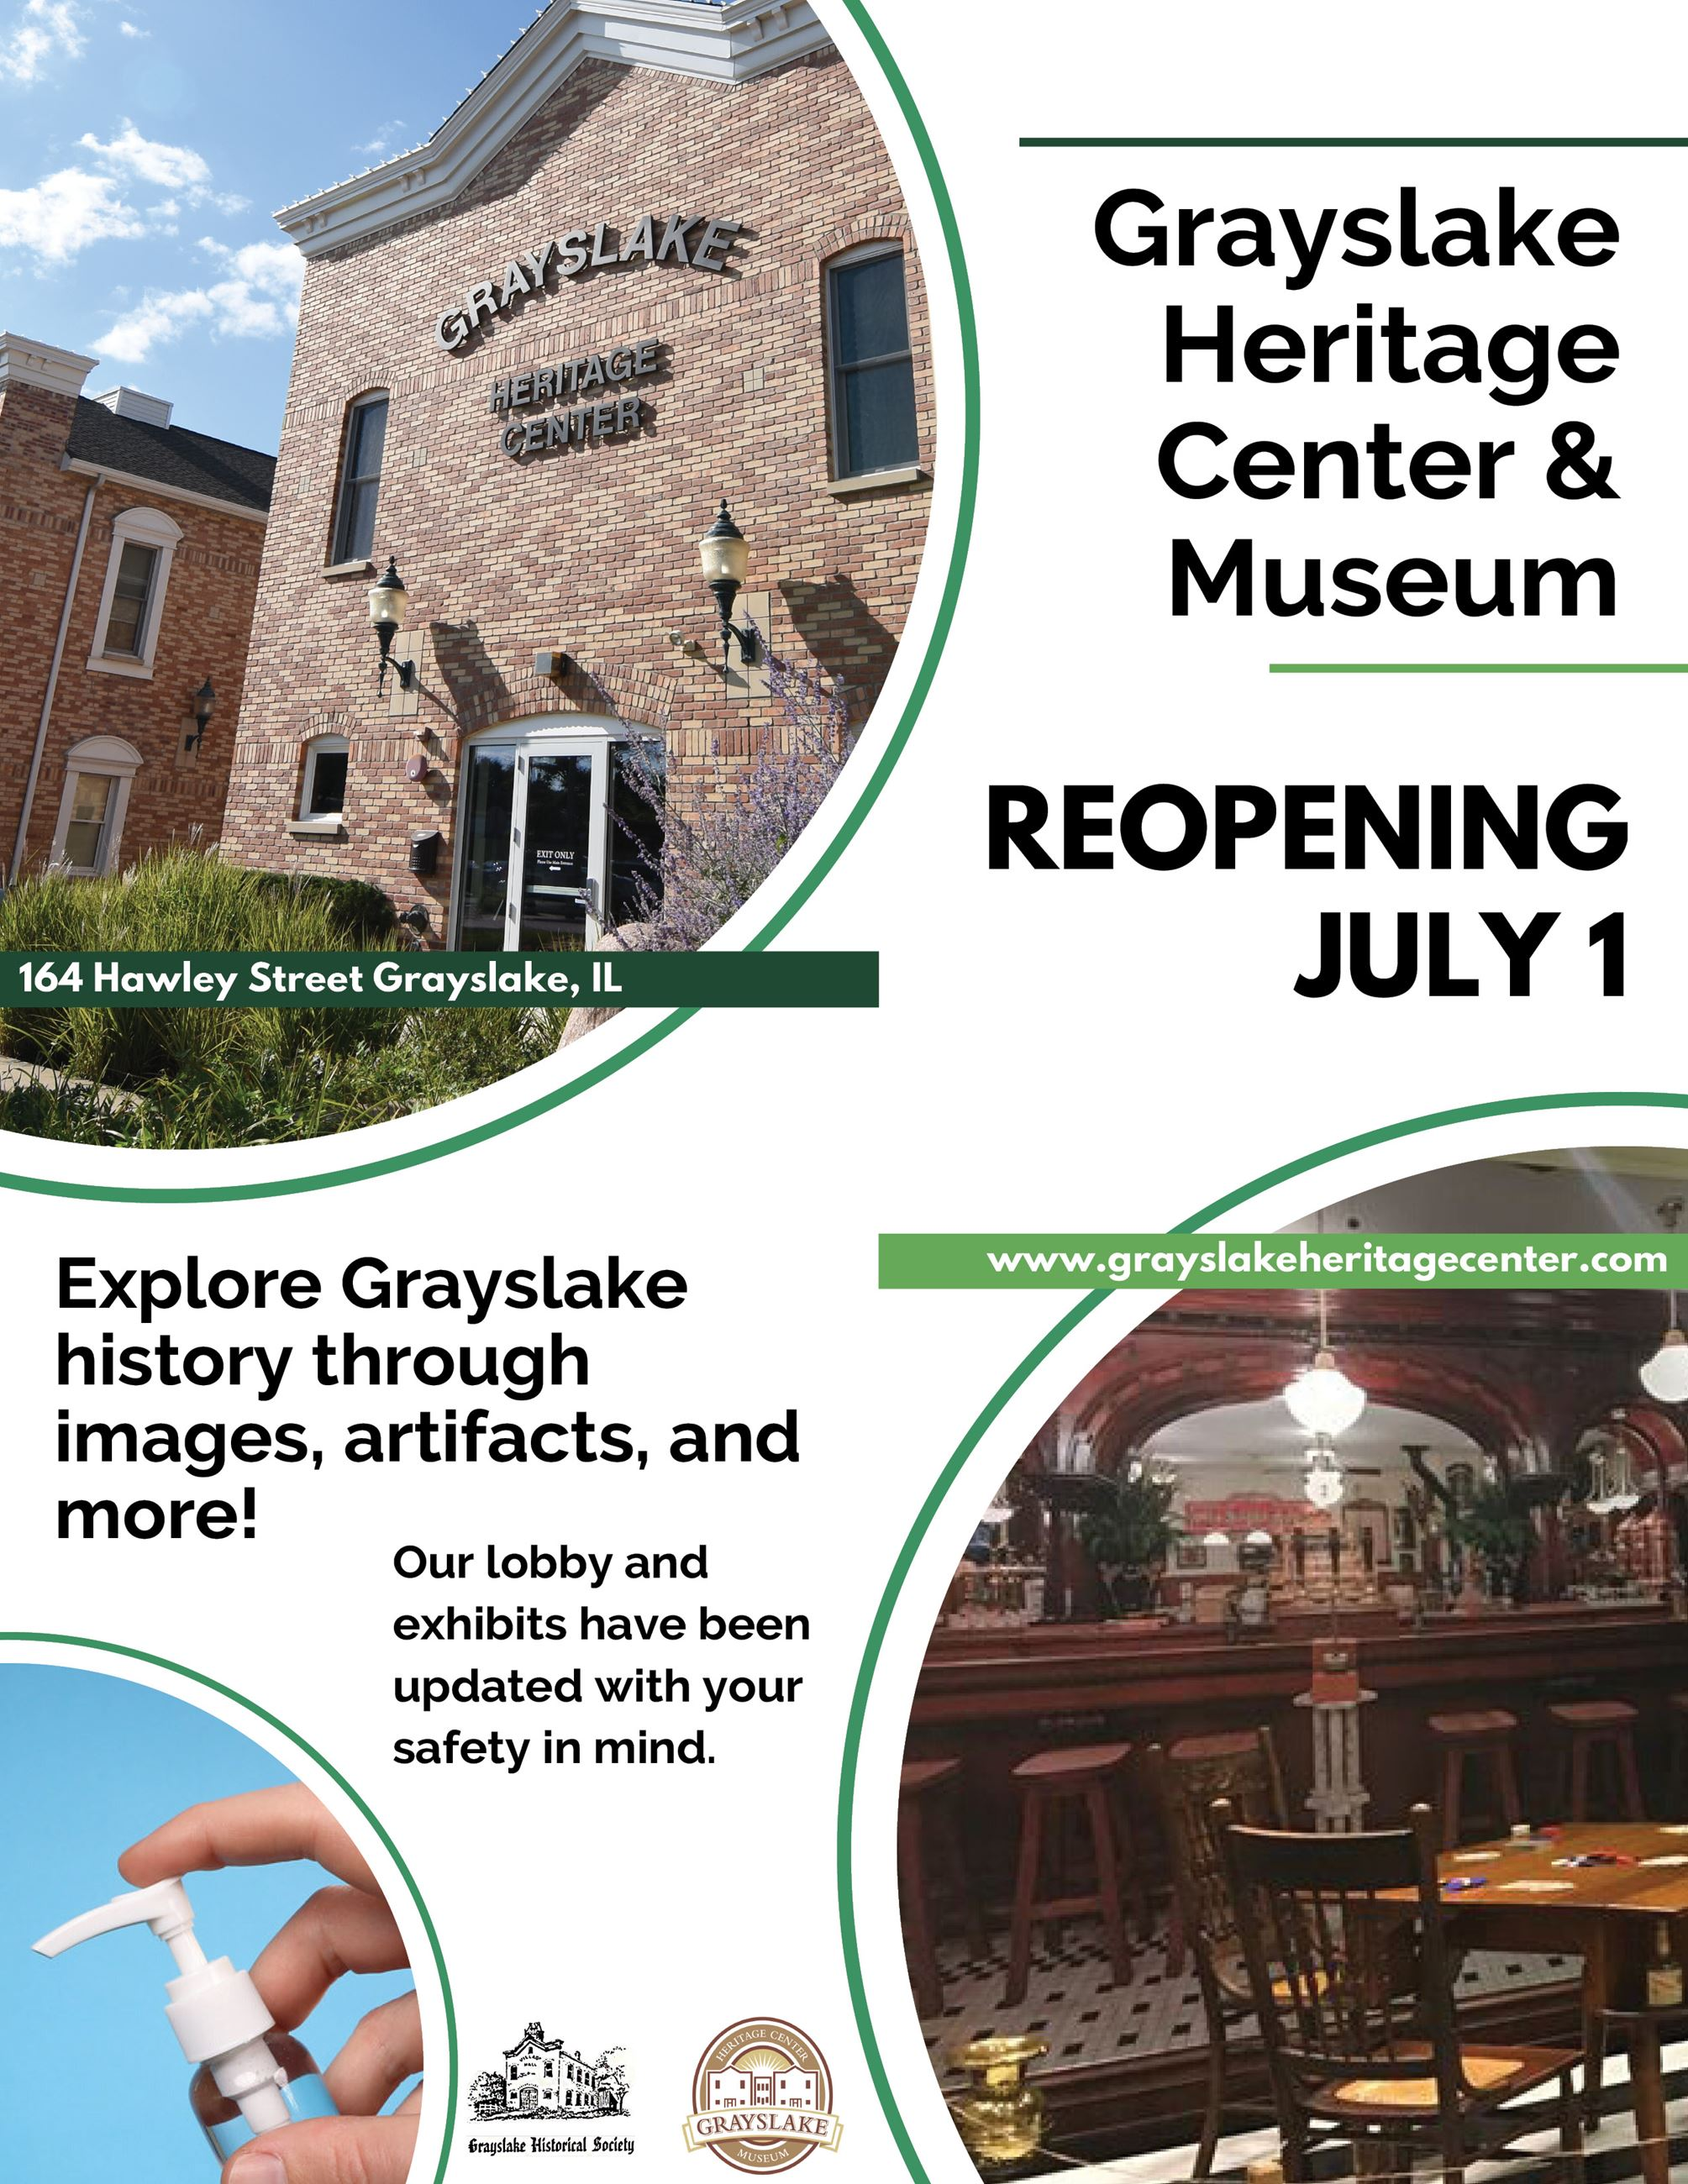 Reopening Poster: The Grayslake Heritage Center & Museum reopens Wednesday, July 1